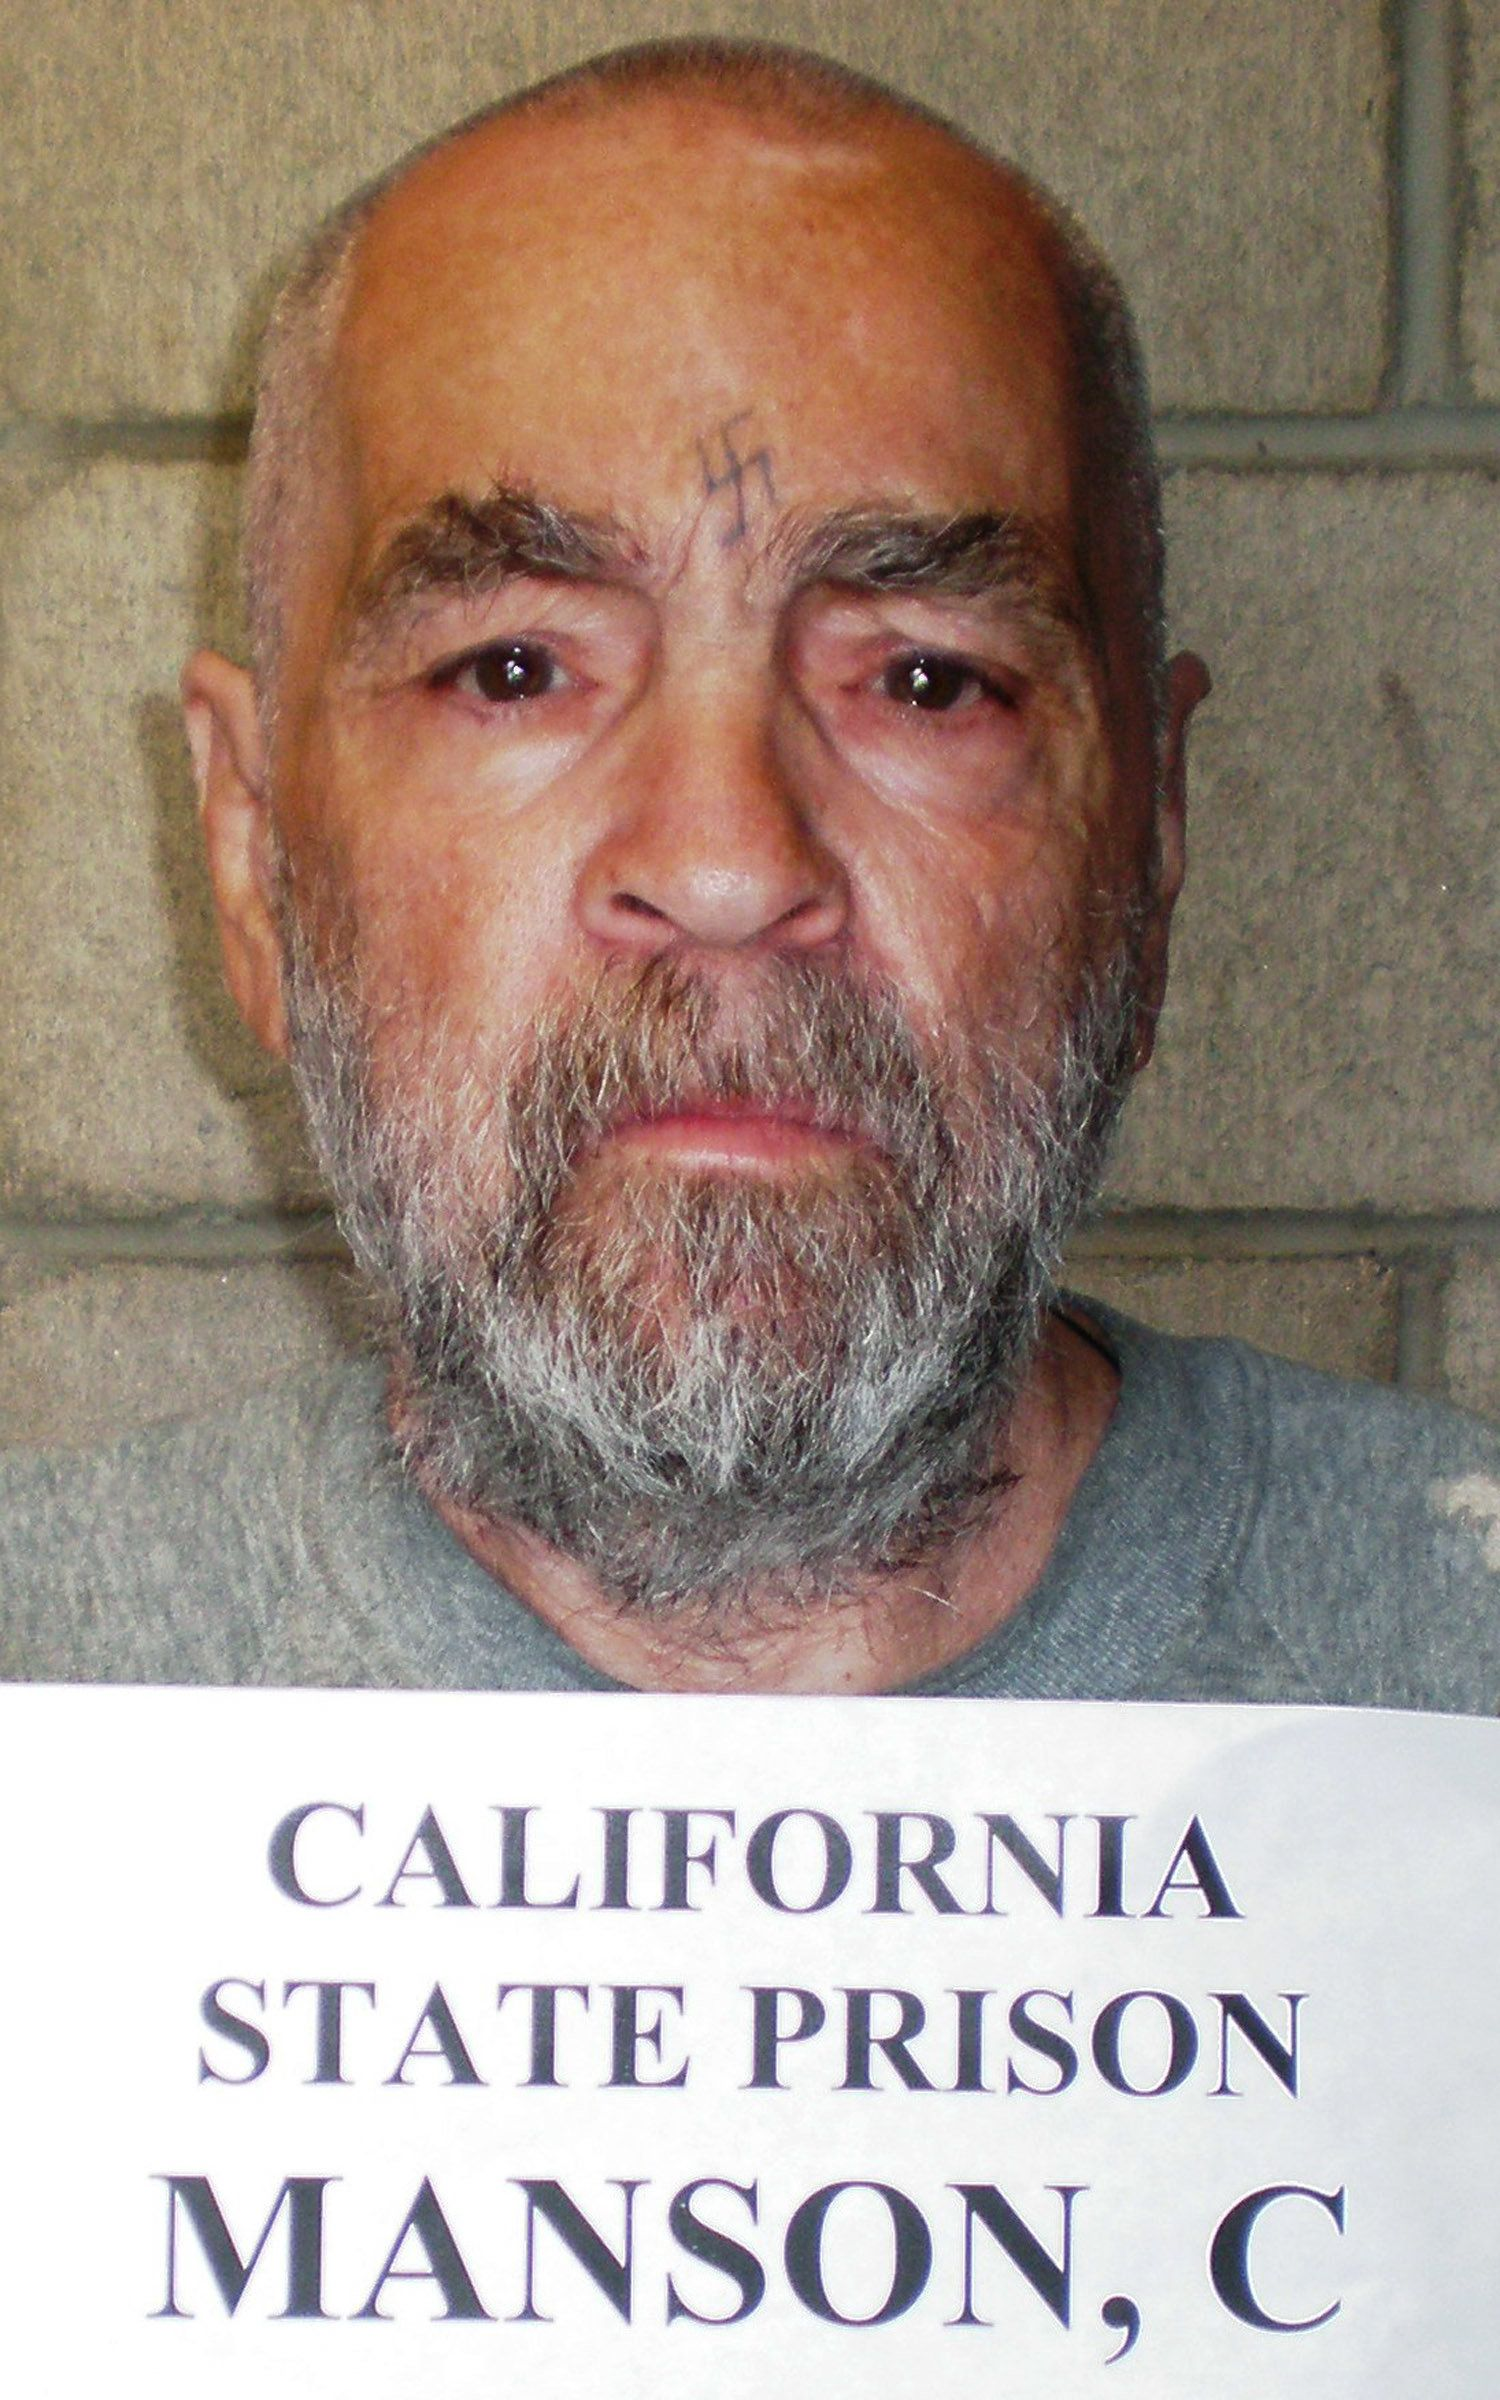 Convicted murderer Charles Manson, 74, is shown in this handout image released March 18, 2009 from Corcoran State Prison in California. Manson is serving a life sentence for his conspiracy role in the killing of seven people in the Tate-LaBianca murders in Los Angeles, 1969. REUTERS/Courtesy of Corcoran State Prison/Handout (UNITED STATES CONFLICT SOCIETY HEADSHOT IMAGE OF THE DAY TOP PICTURE) FOR EDITORIAL USE ONLY. NOT FOR SALE FOR MARKETING OR ADVERTISING CAMPAIGNS